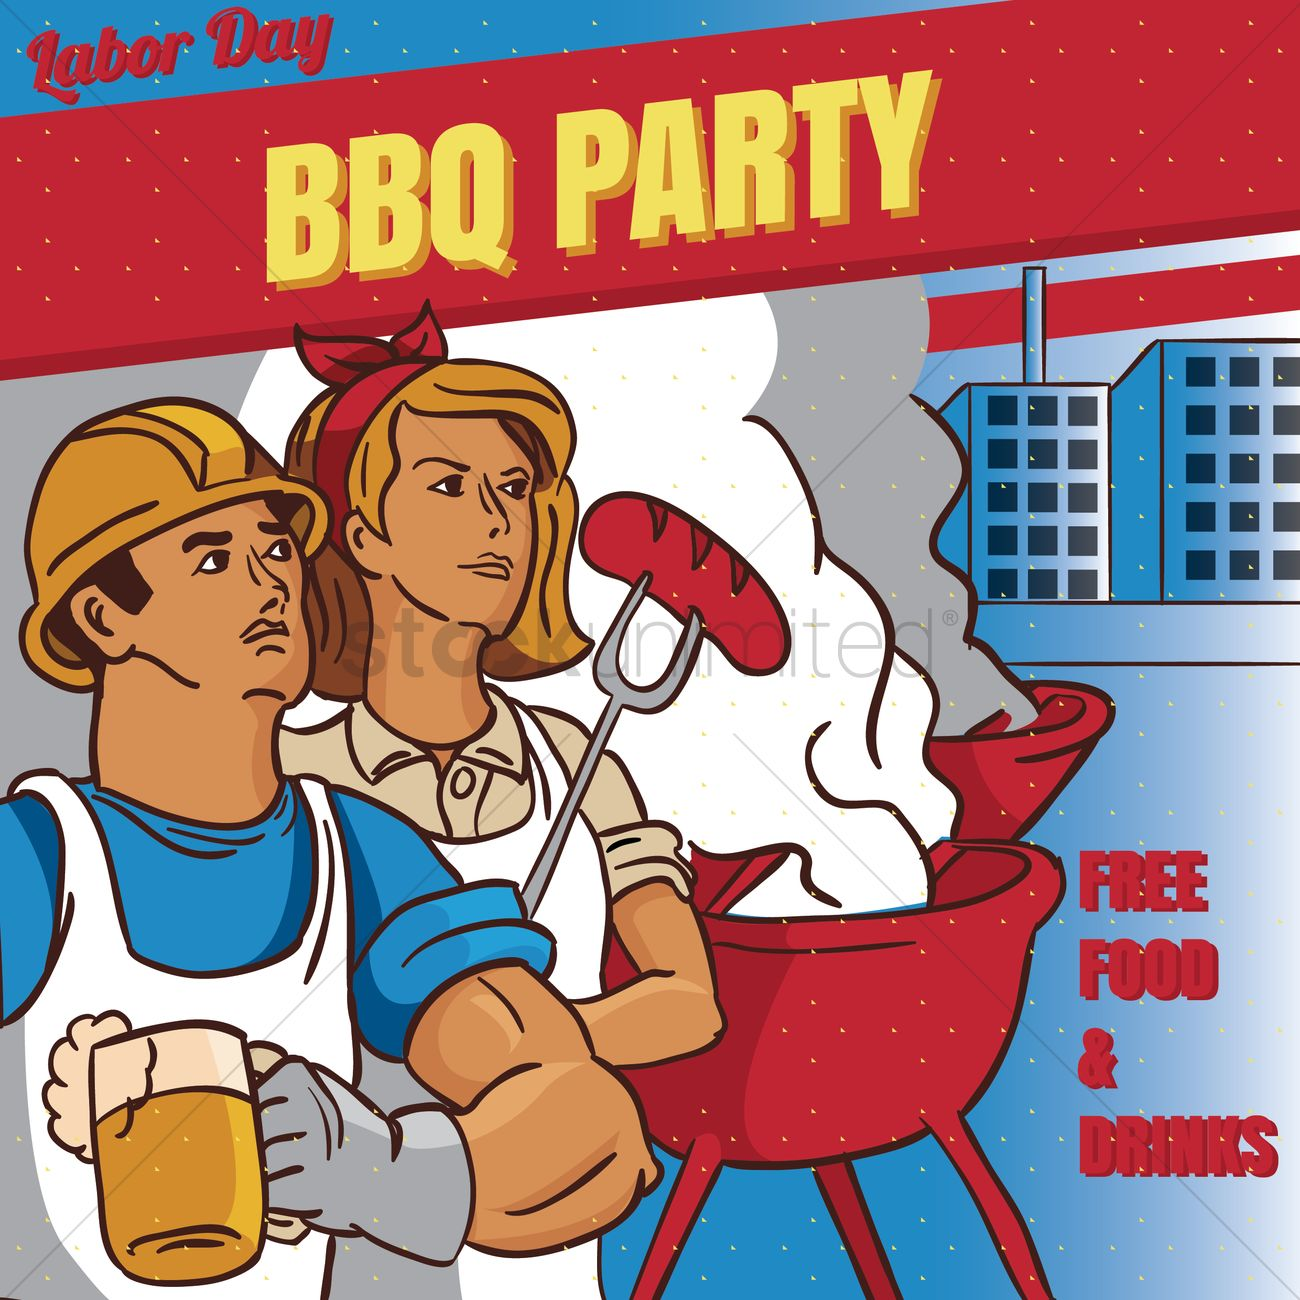 labor day bbq party poster vector image - 1537848 | stockunlimited